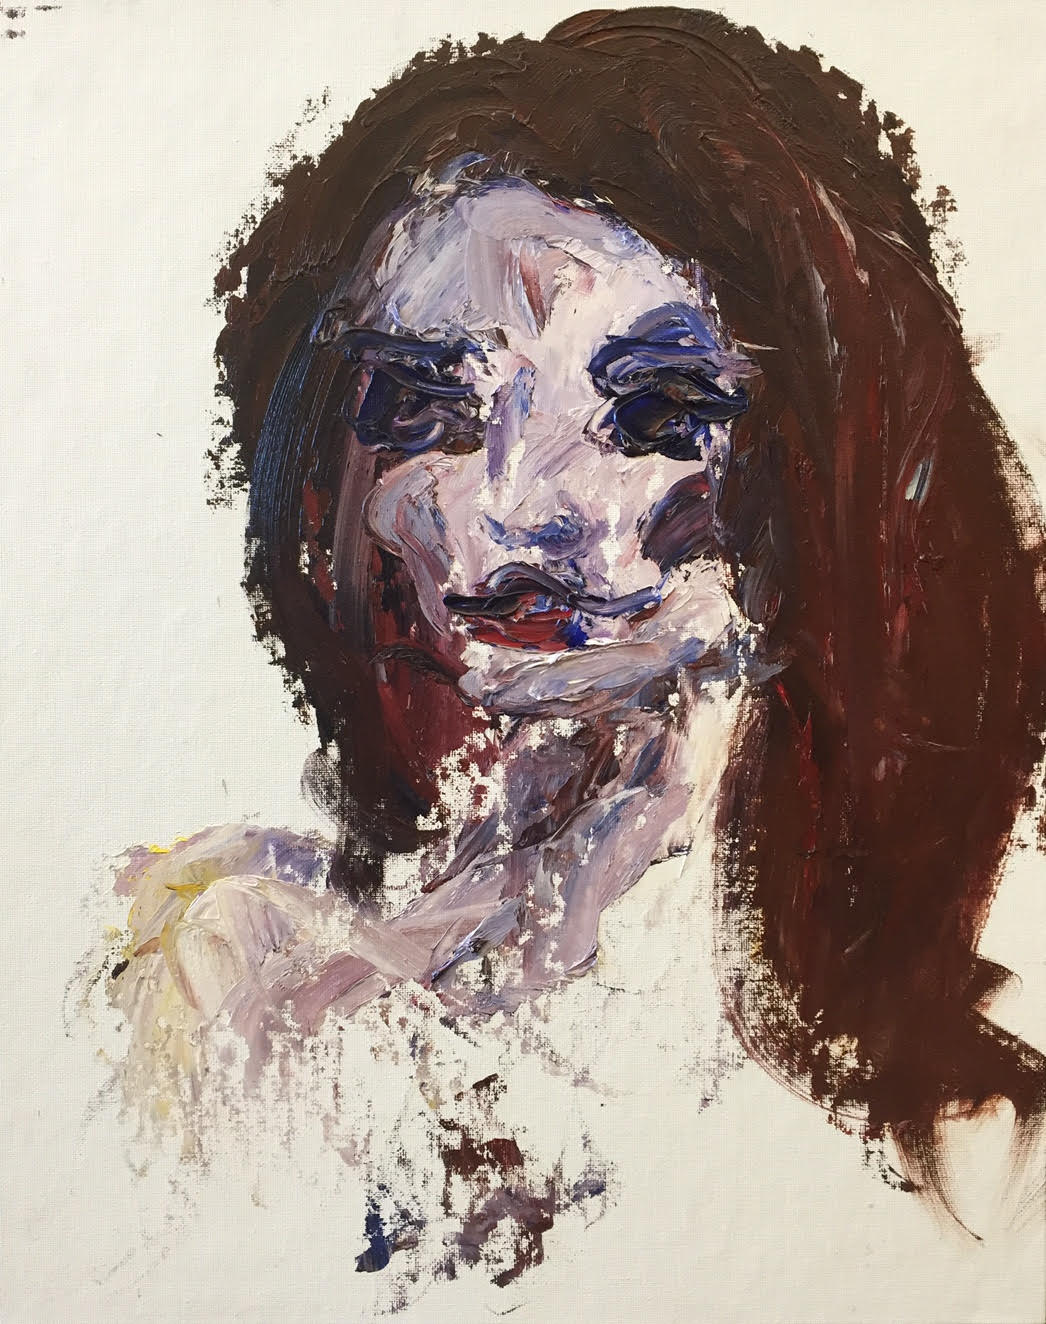 Study with a Palette Knife 1 Lydia Hope Samson